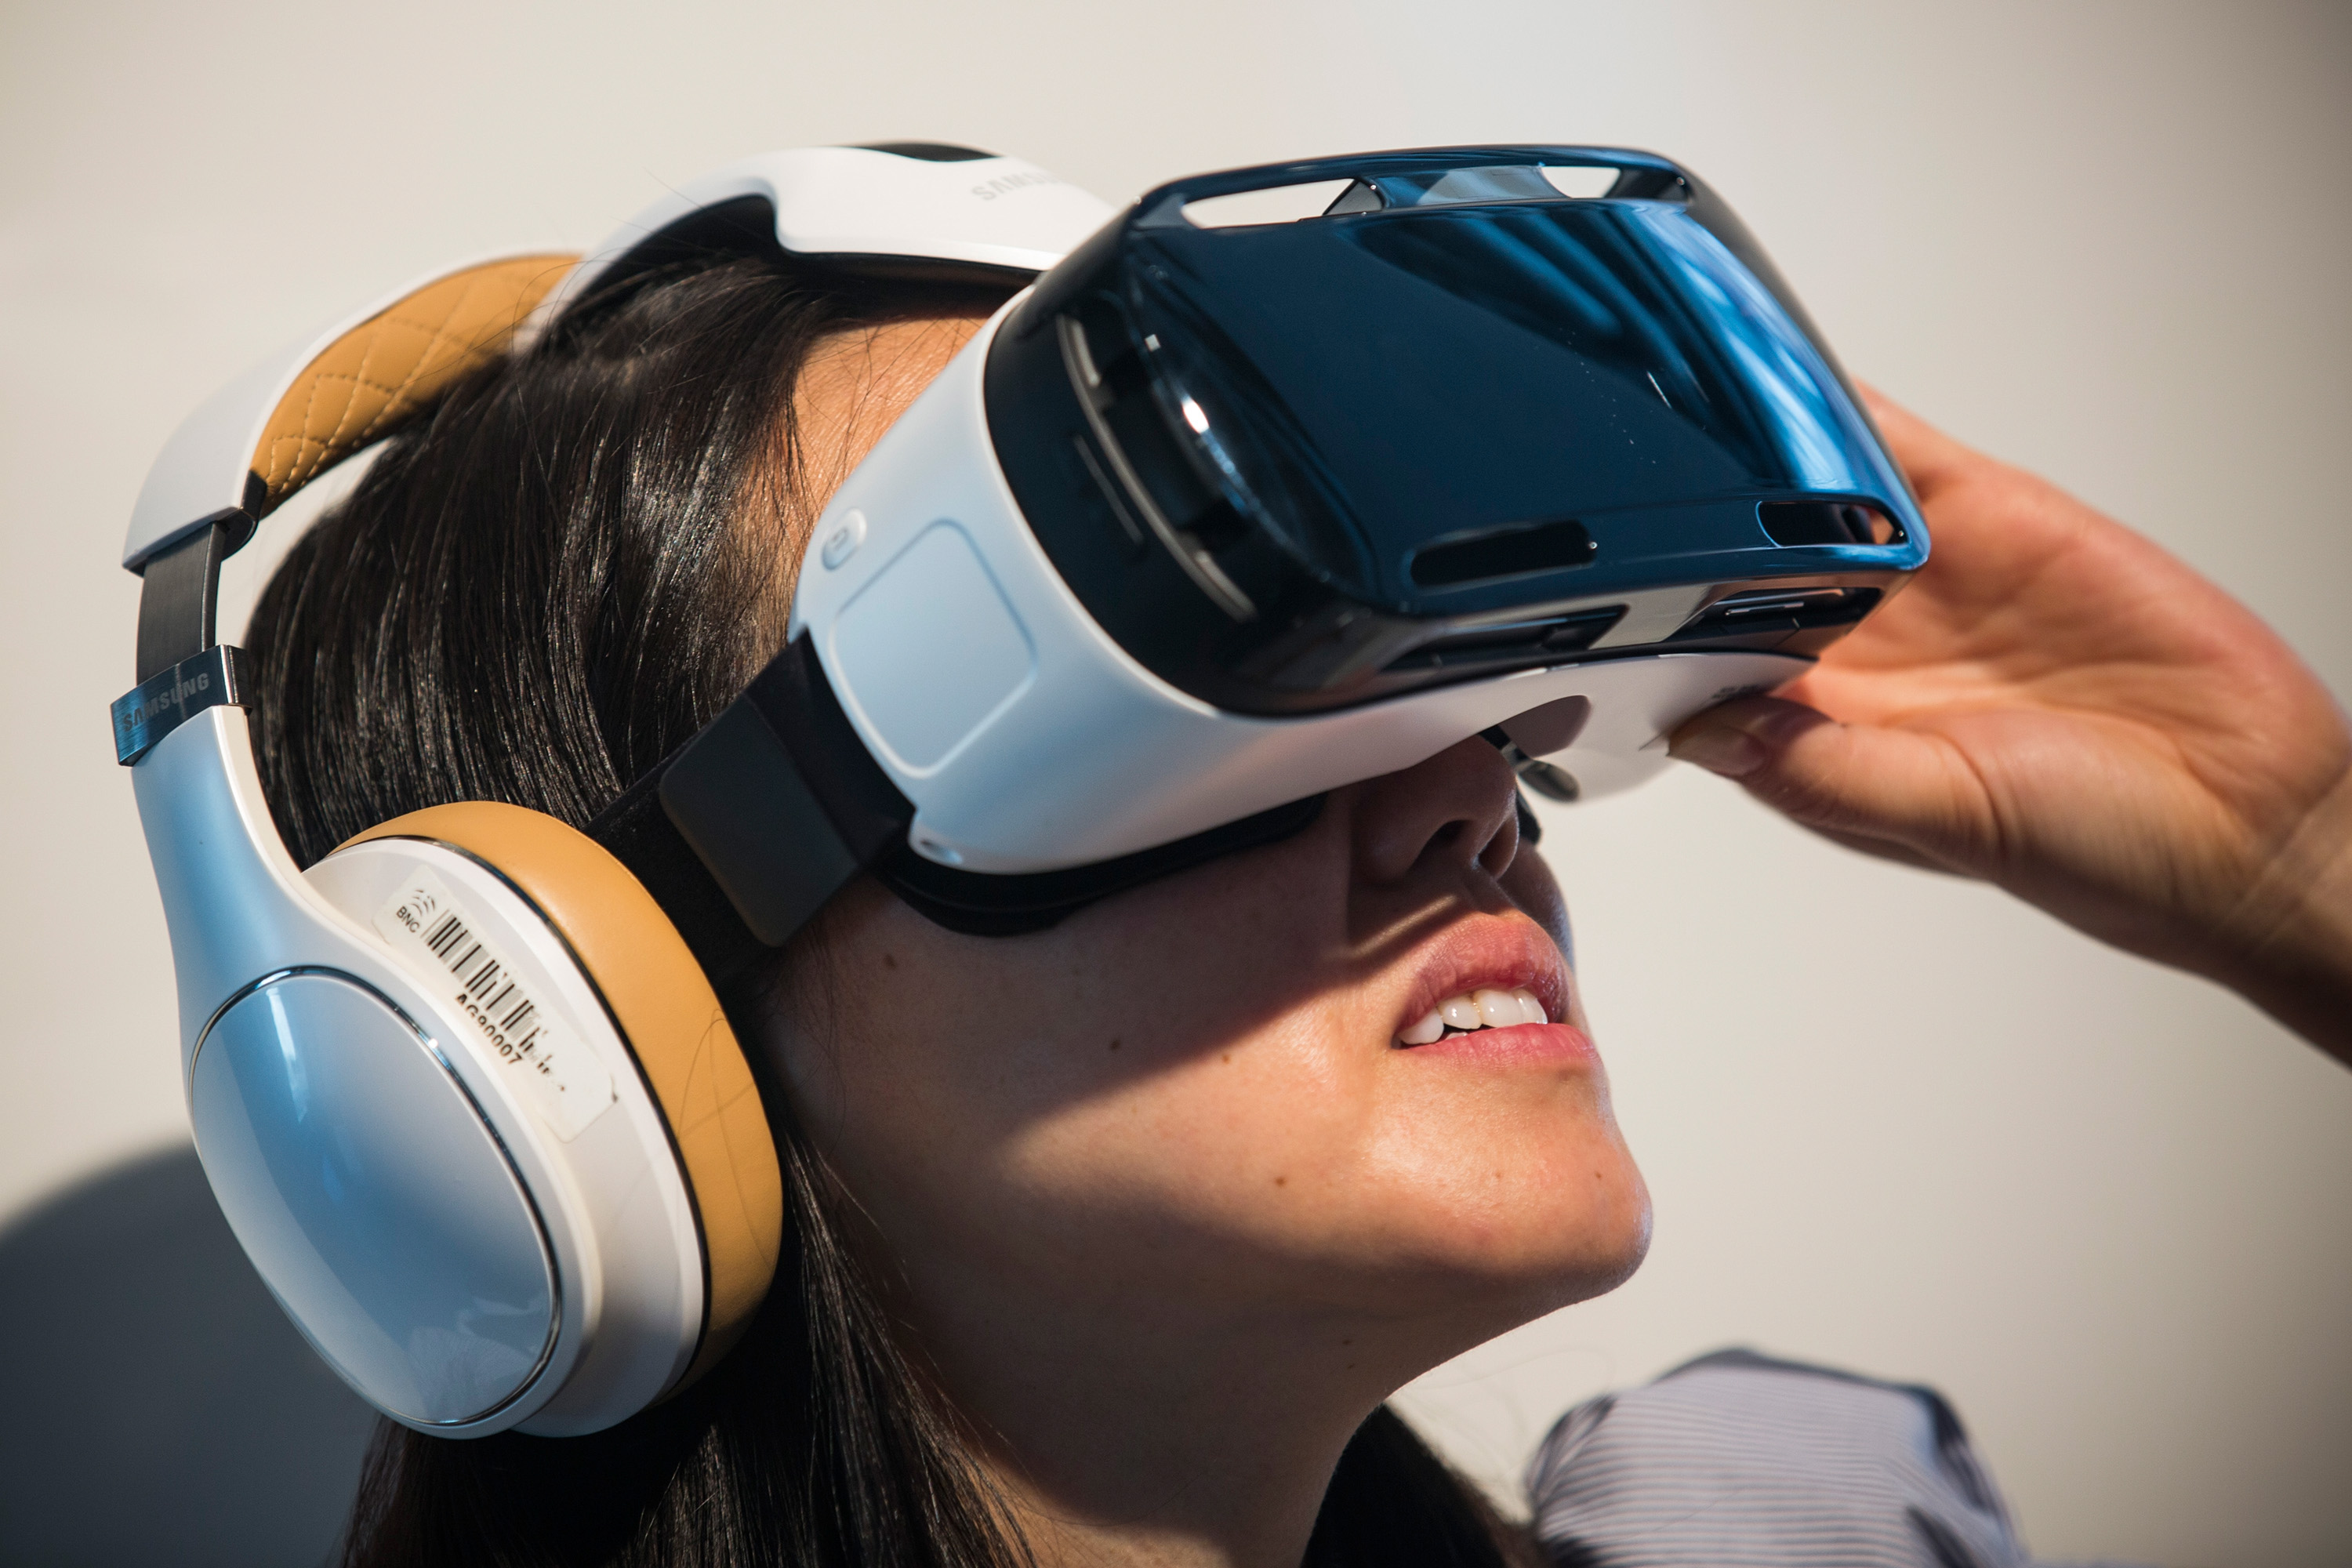 A woman tries out the Samsung Gear, a virtual reality simulator that uses the Samsung Galaxy Note 4 for a screen at a media launch event on September 3, 2014 in New York City. The Note 4 features a 5.7-inch screen.